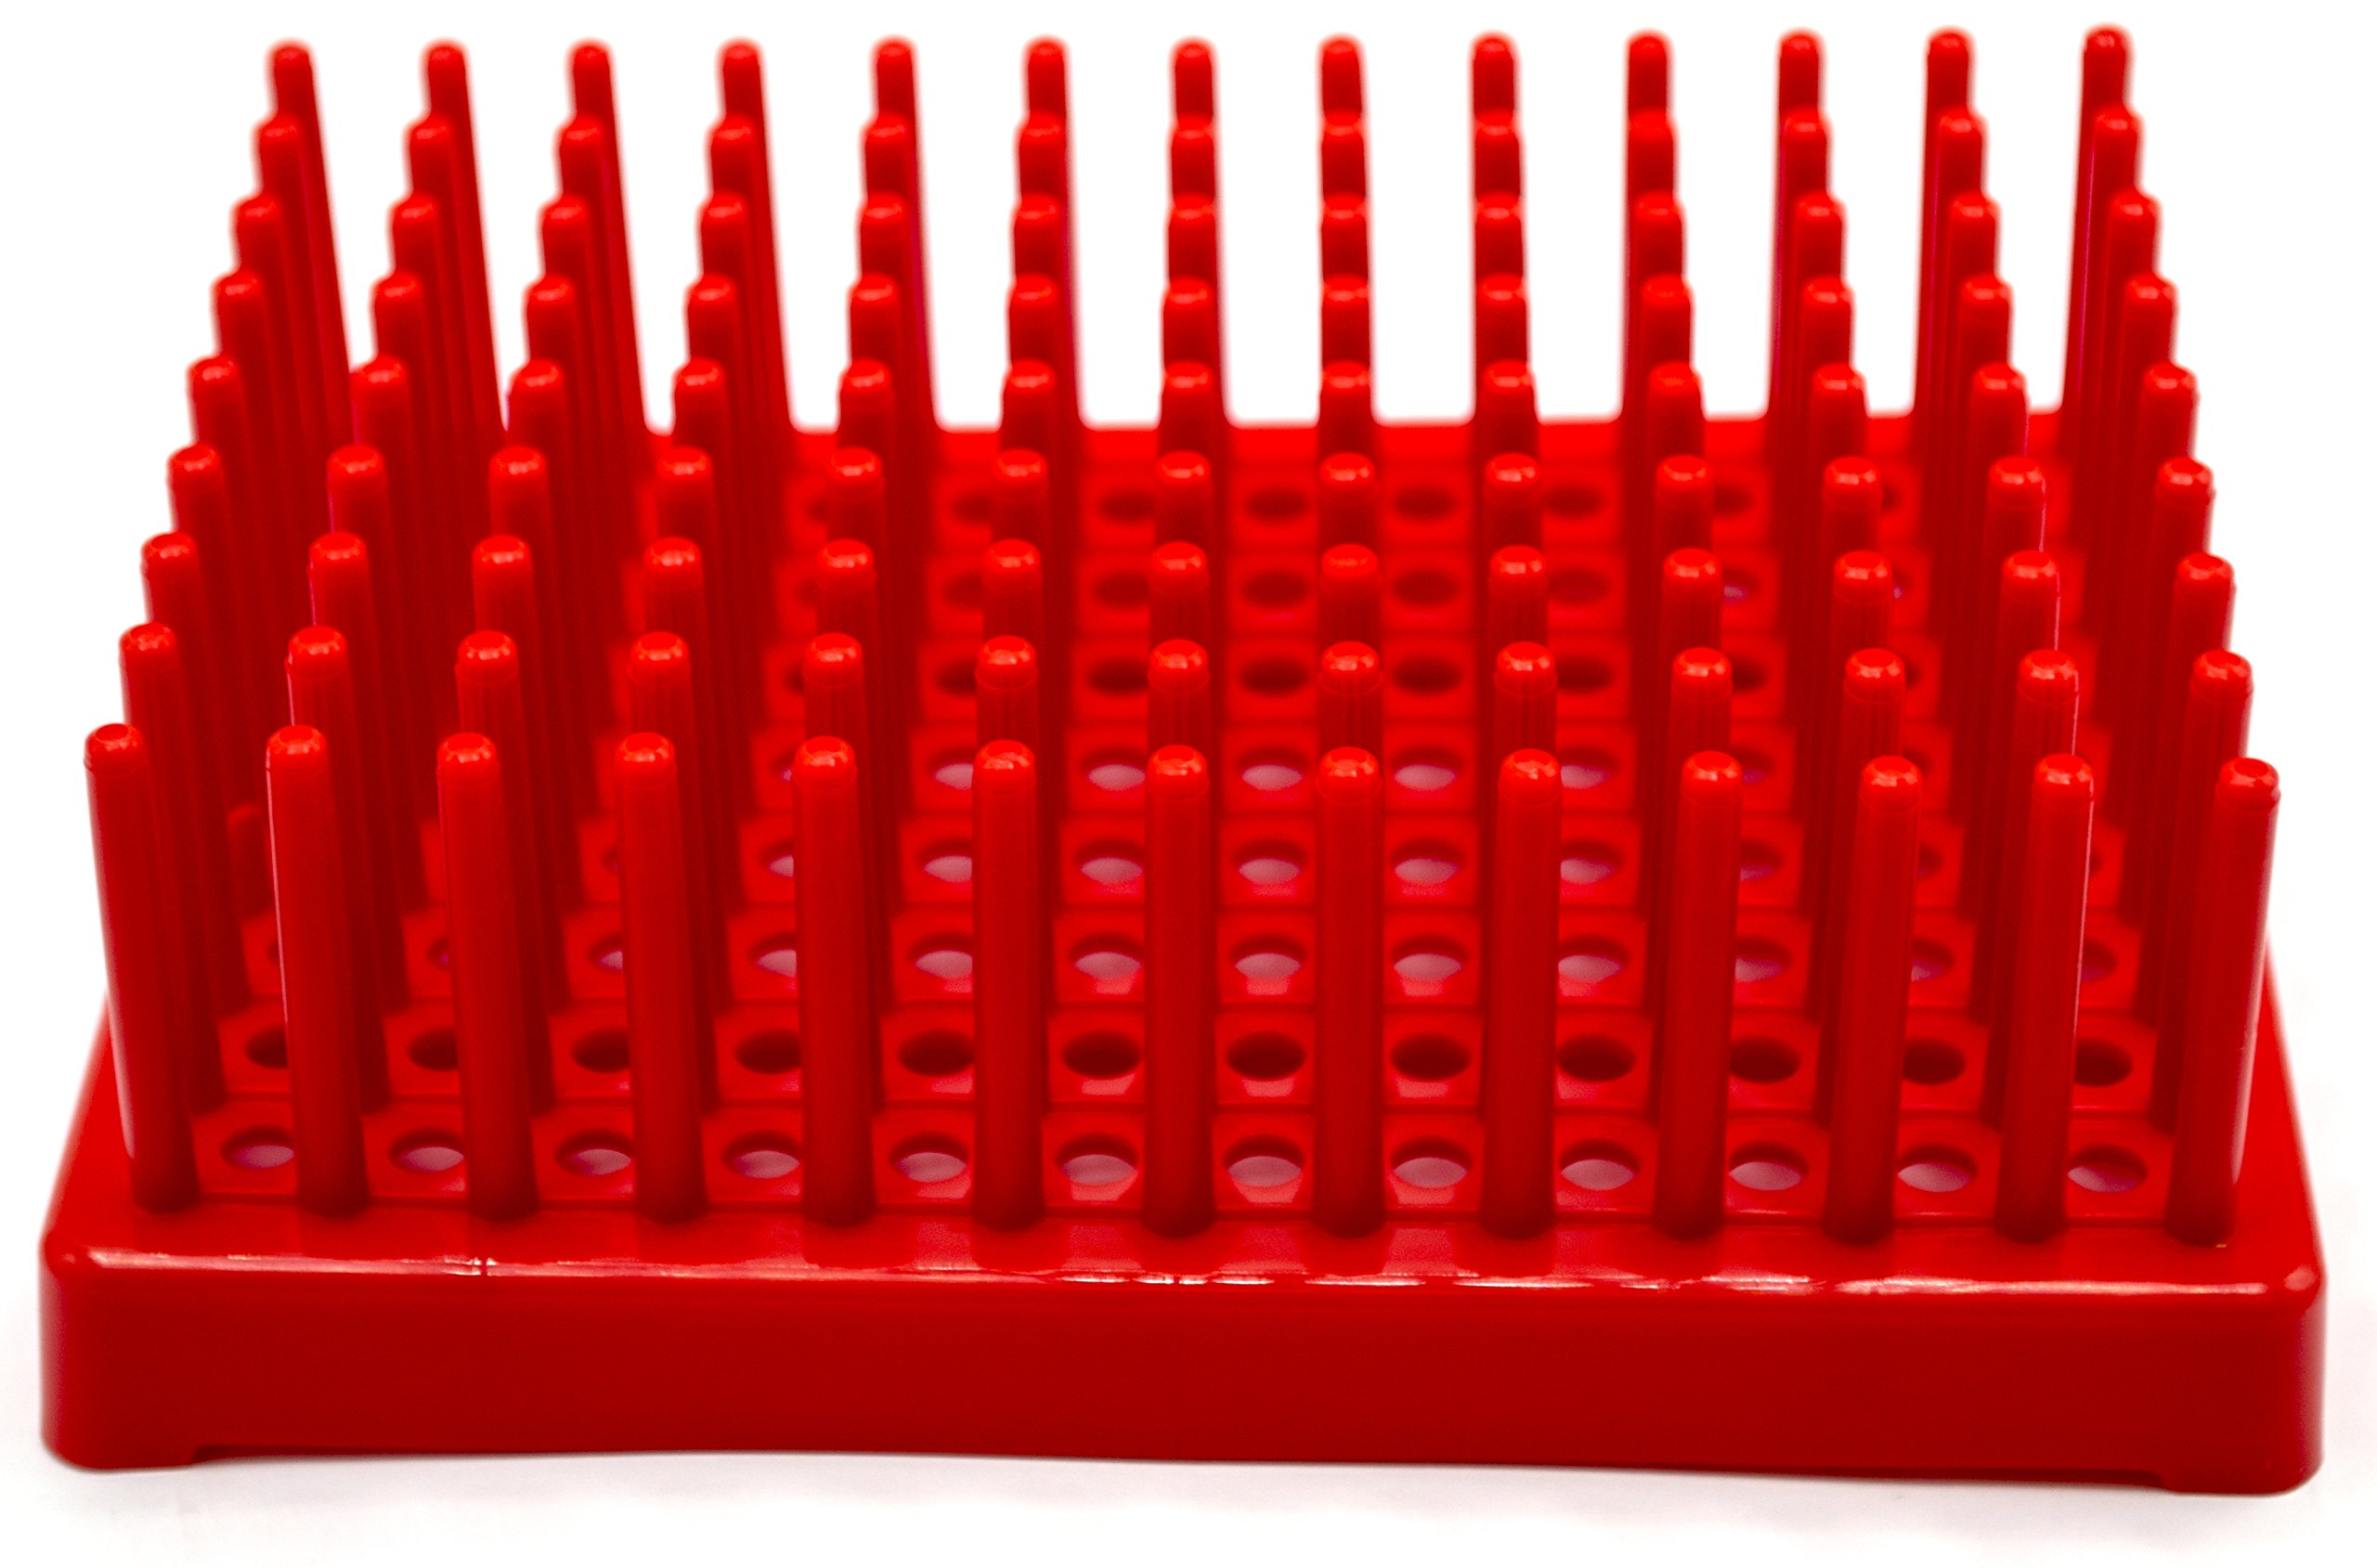 Red Plastic Test Tube Peg Drying Rack Holds 96 13mm Test Tubes - Eisco Labs by EISCO